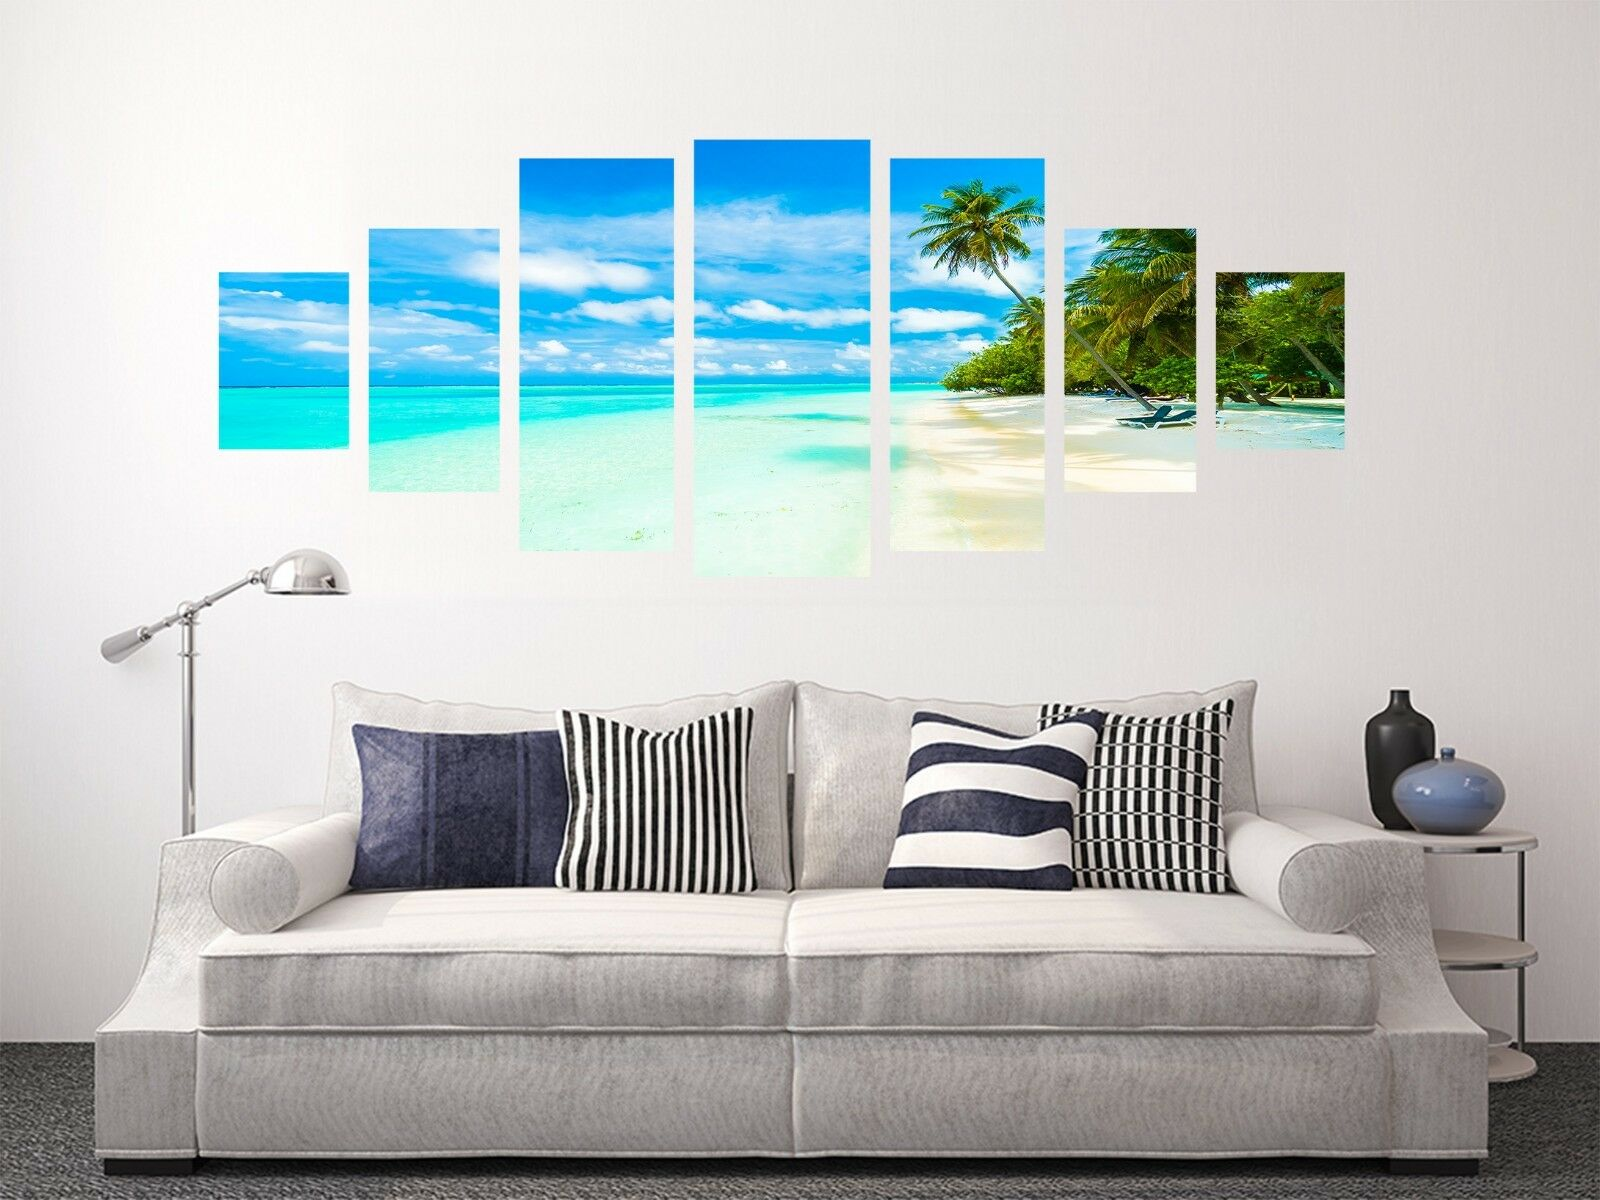 3D Palm Beach Sky 76 Unframed Print Wall Paper Decal Wall Deco Indoor AJ Jenny